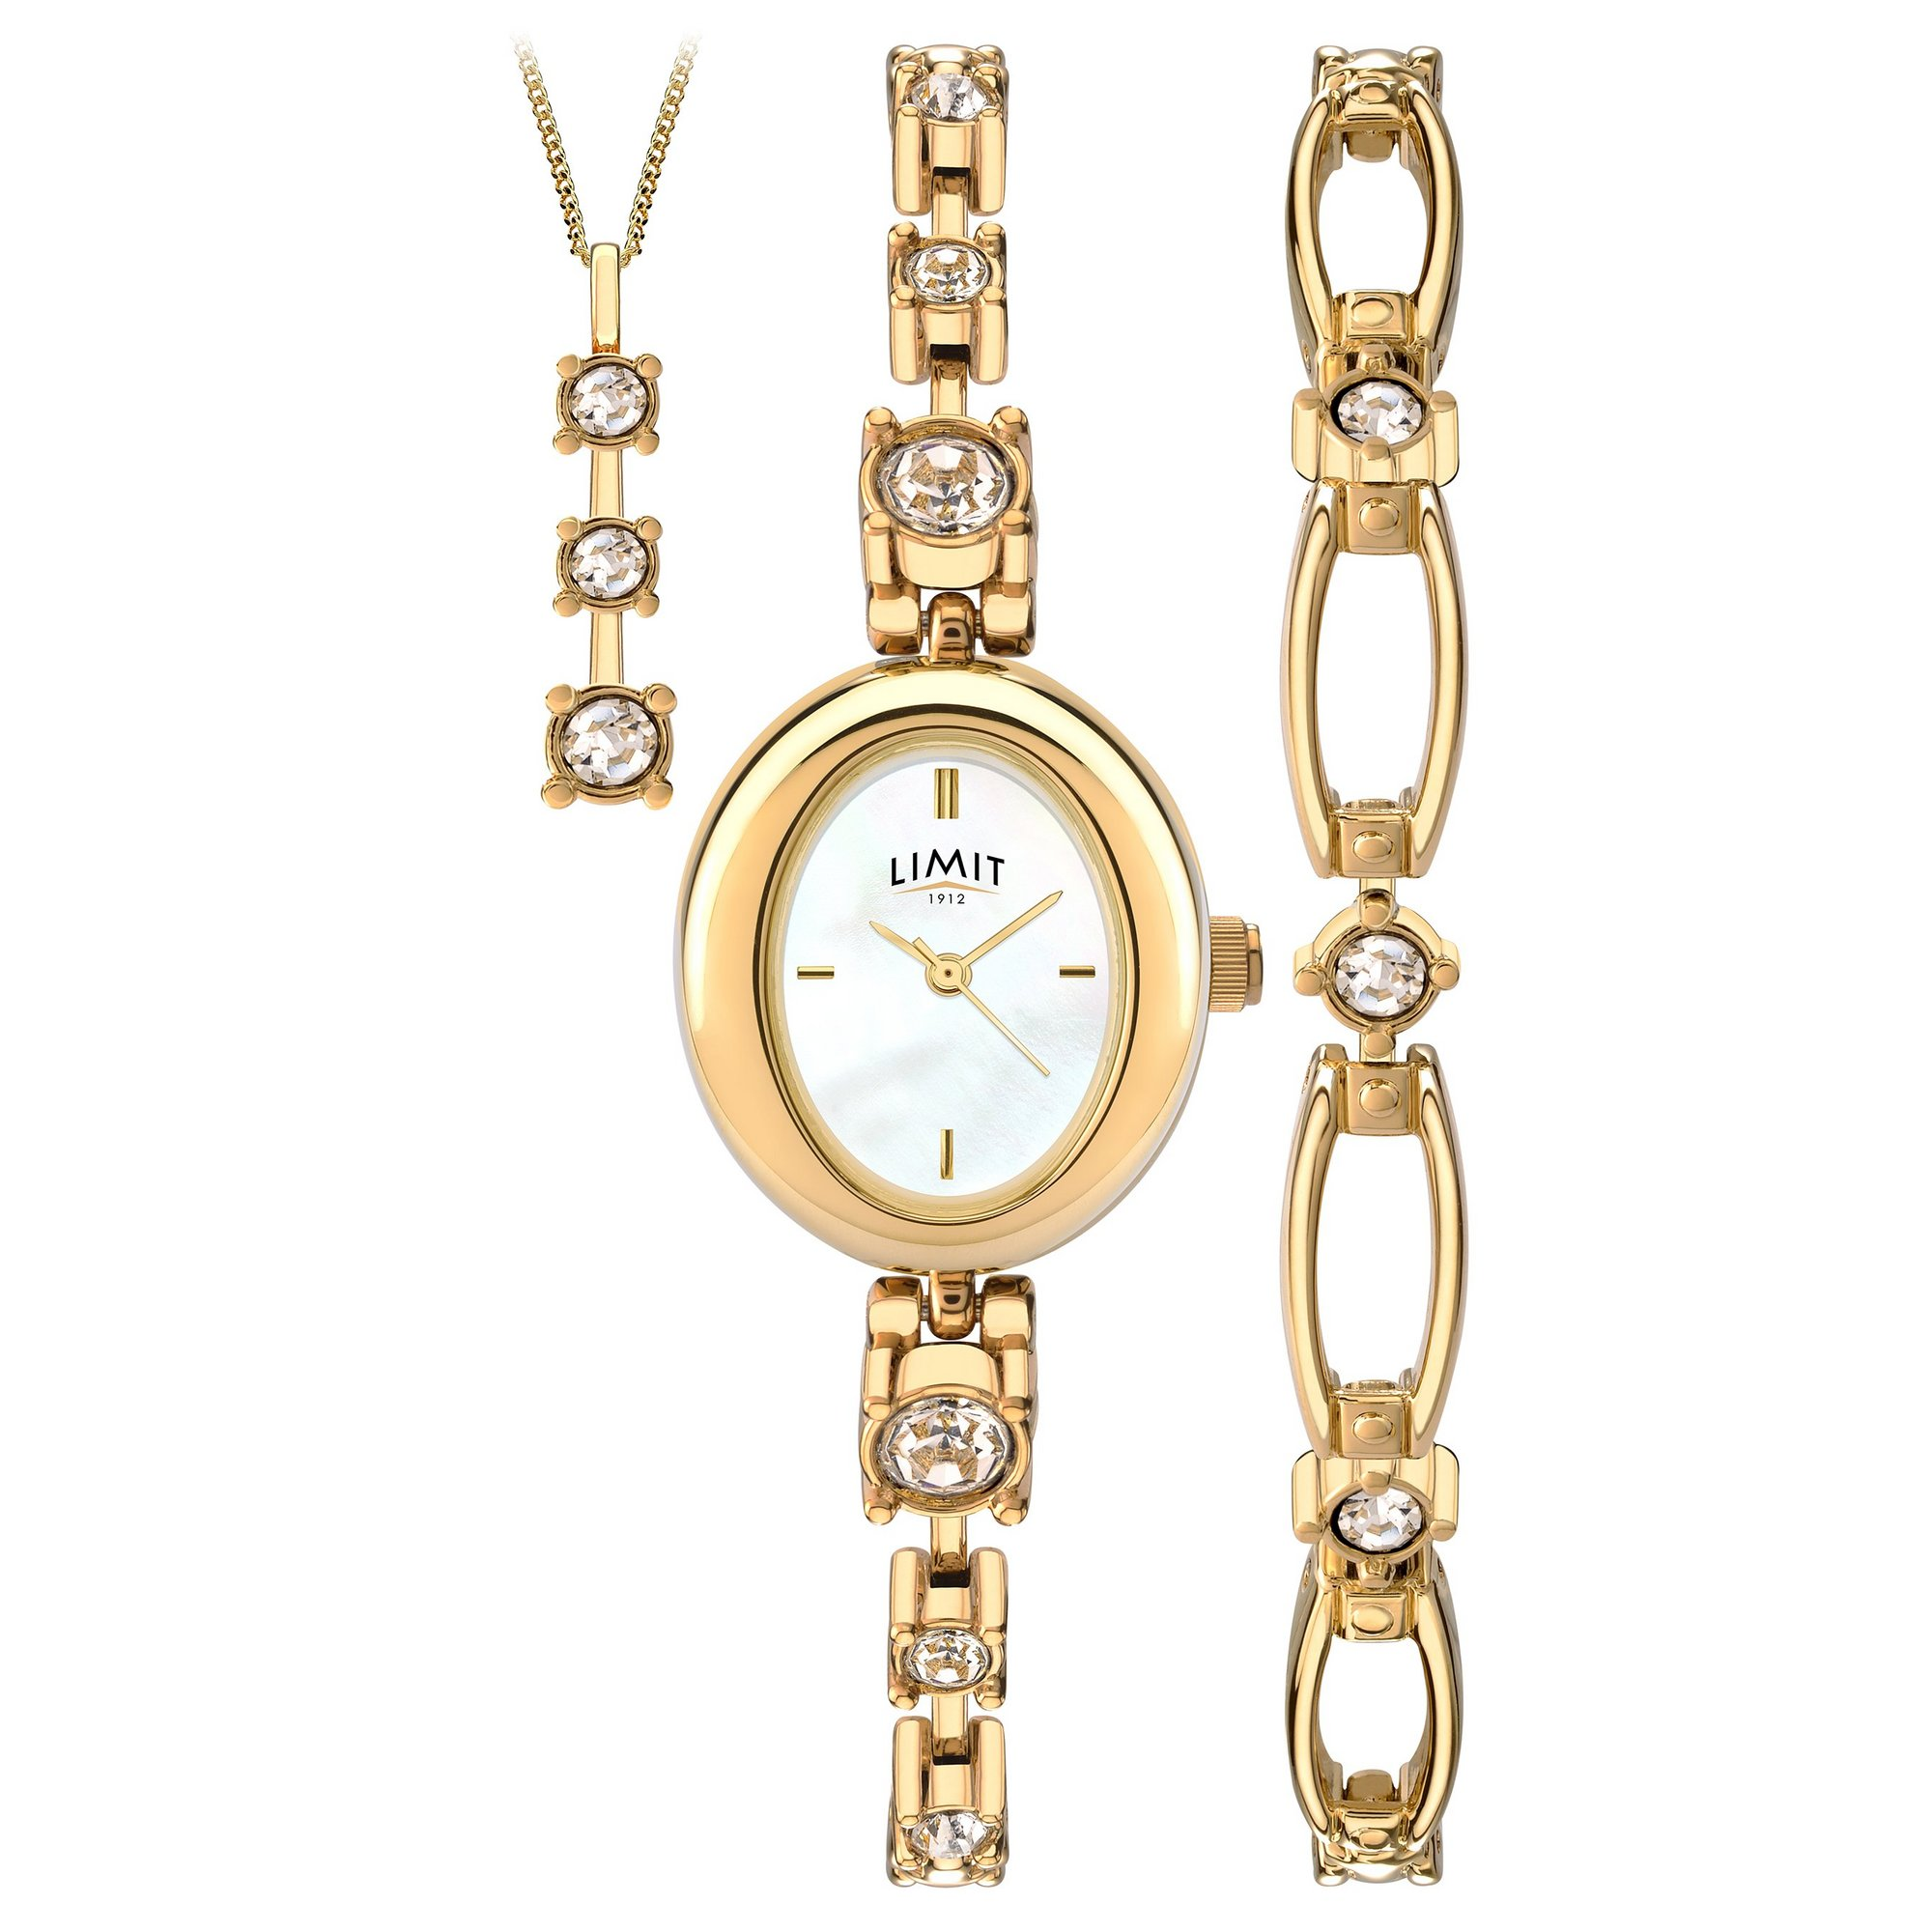 Image of Limit Ladies Gold Plated Watch Gift Set